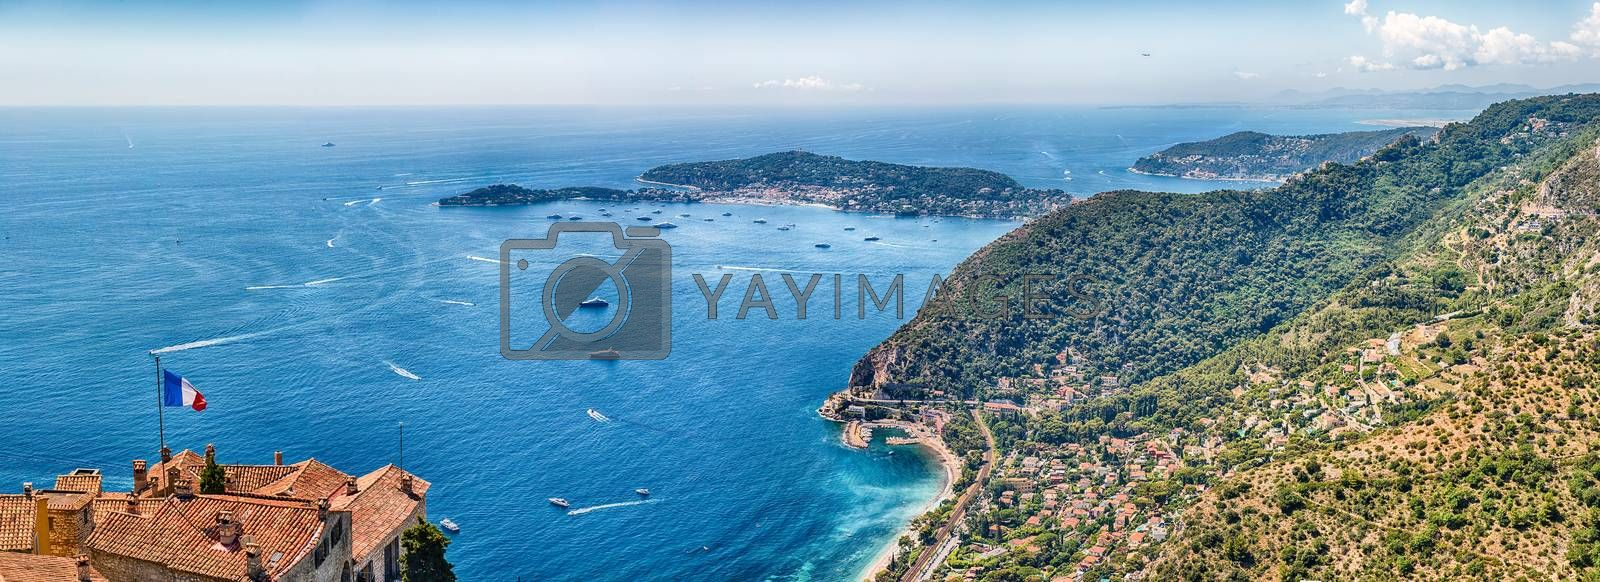 Scenic aerial view from the town of Èze over the beautiful coastline near the city of Nice, Cote d'Azur, France. It is one of the most renowned tourist site of the French Riviera